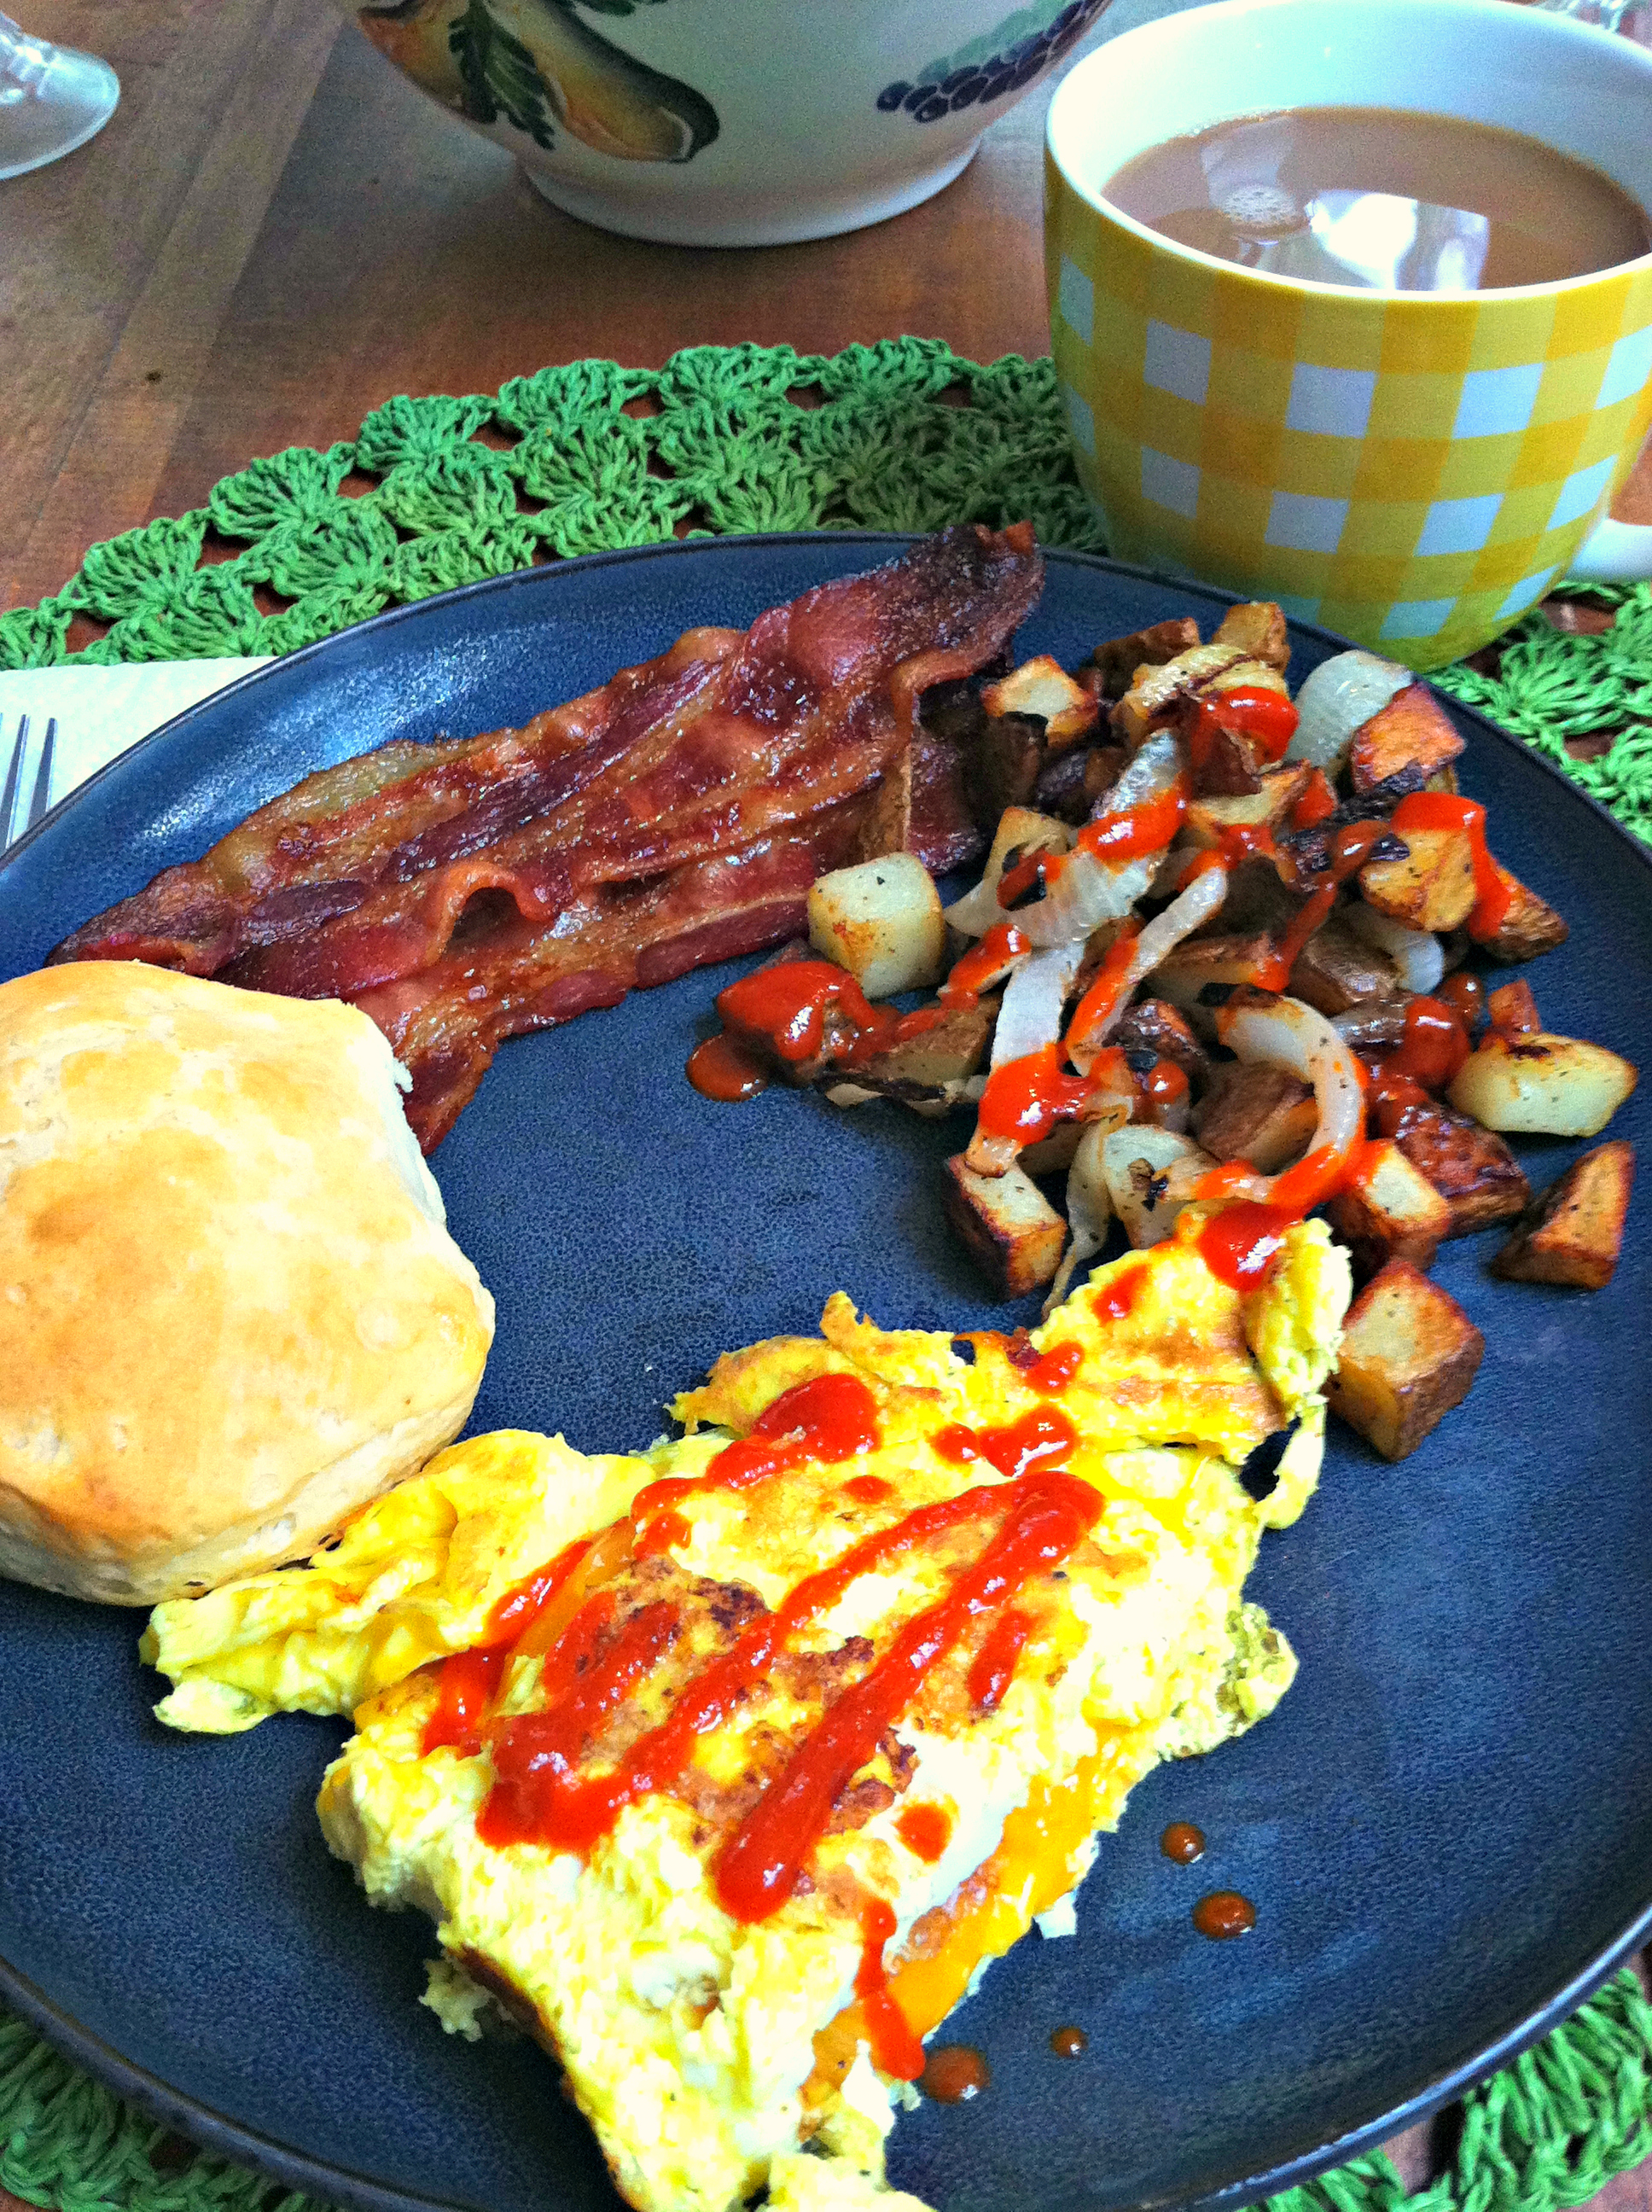 Brunch eggs hash browns bacon